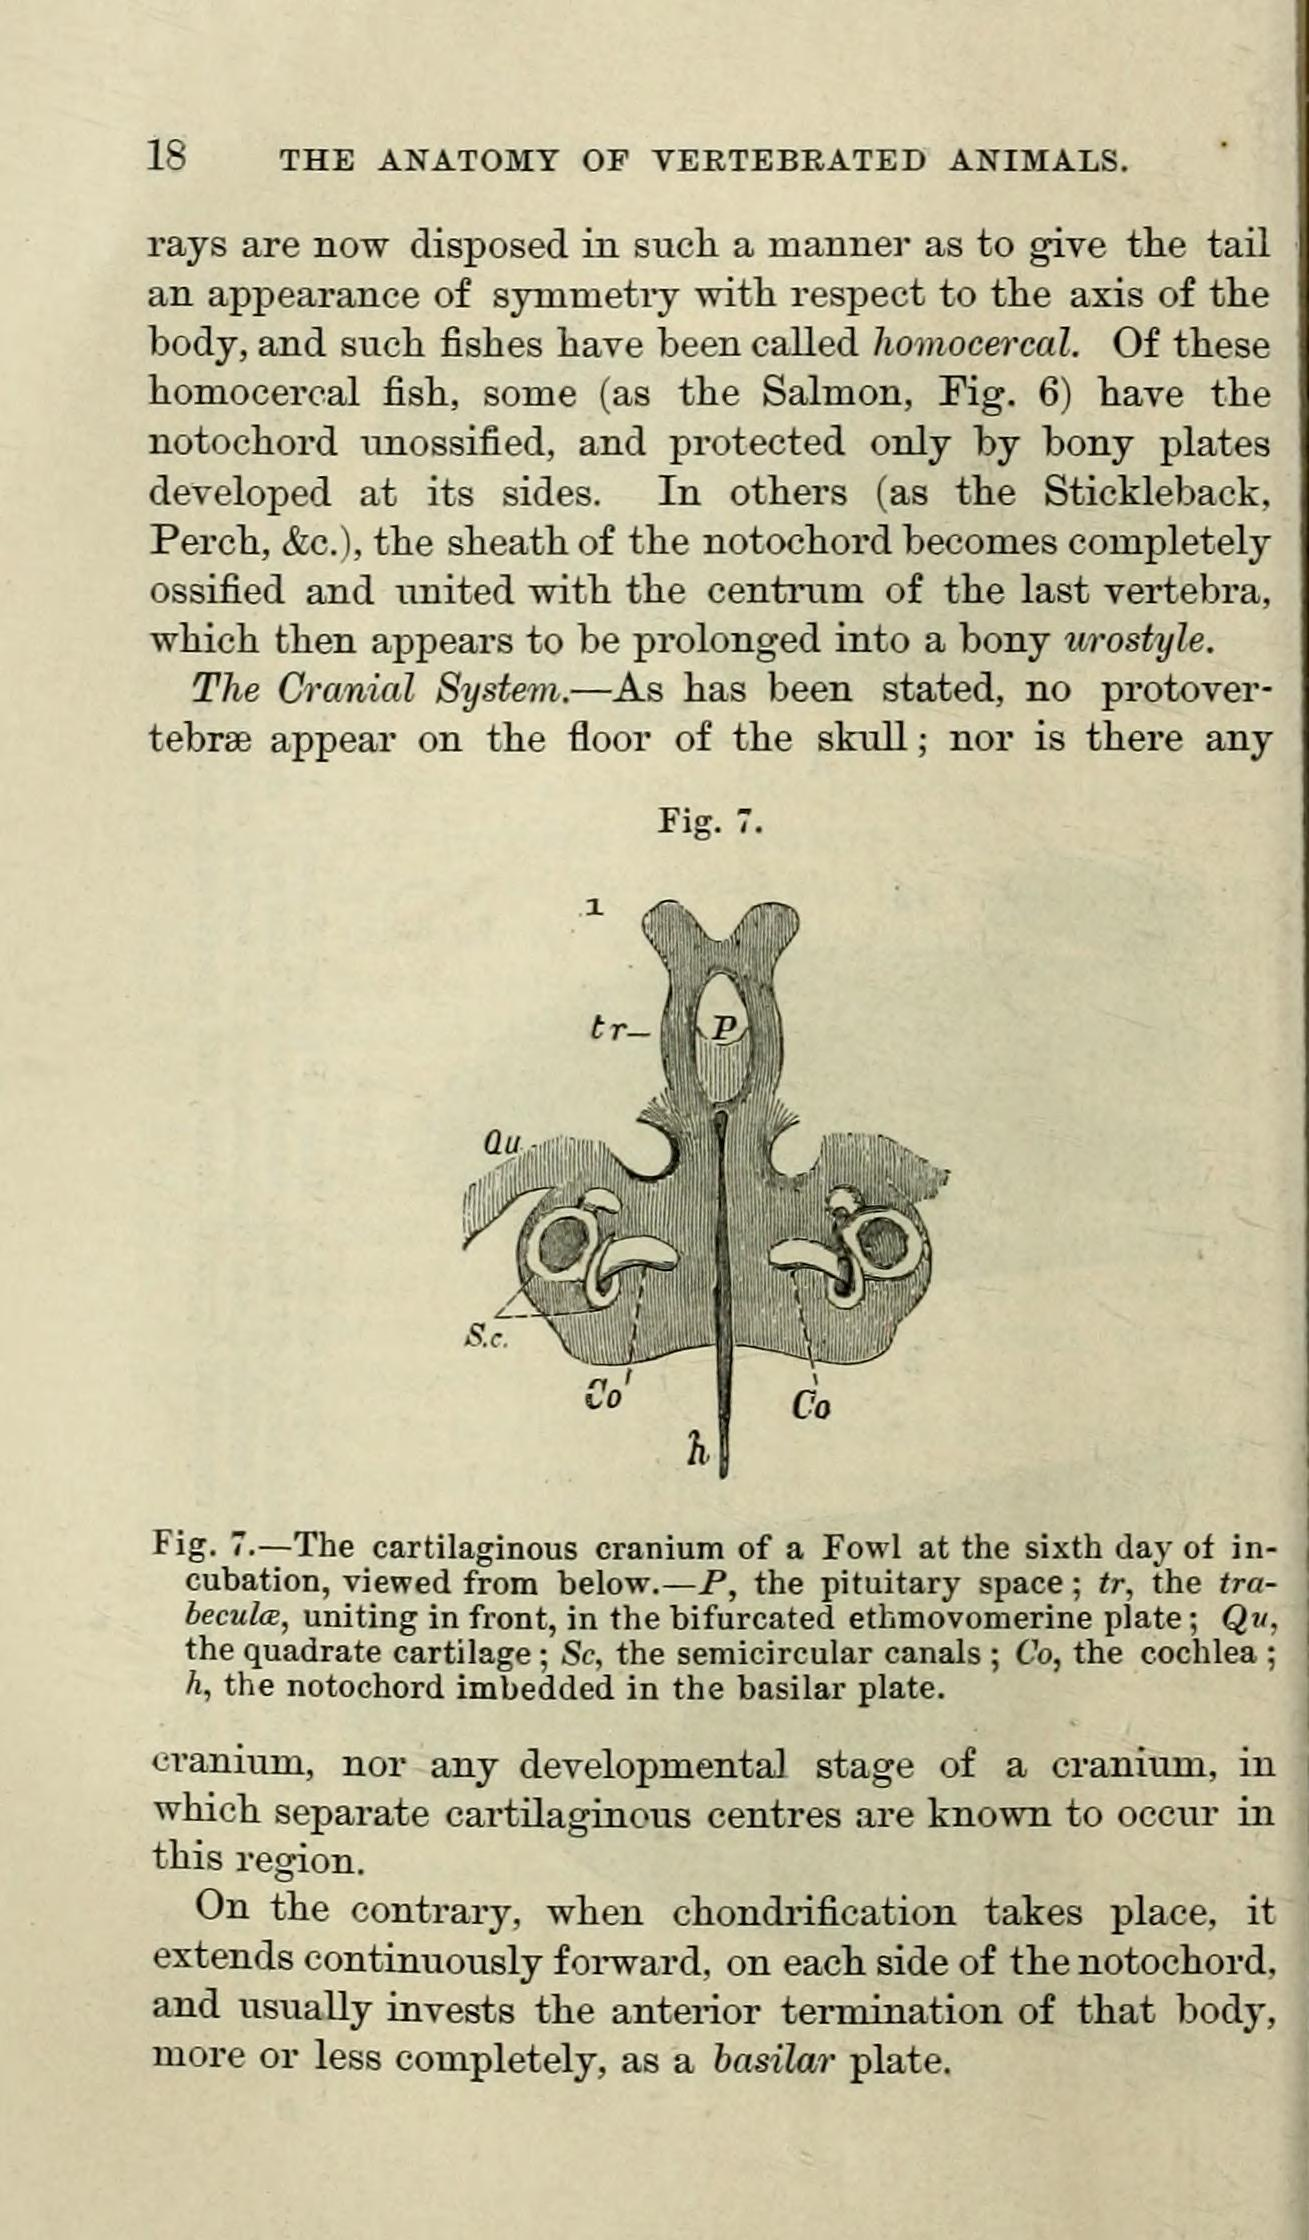 Filea Manual Of The Anatomy Of The Vertebrated Animals Page 18